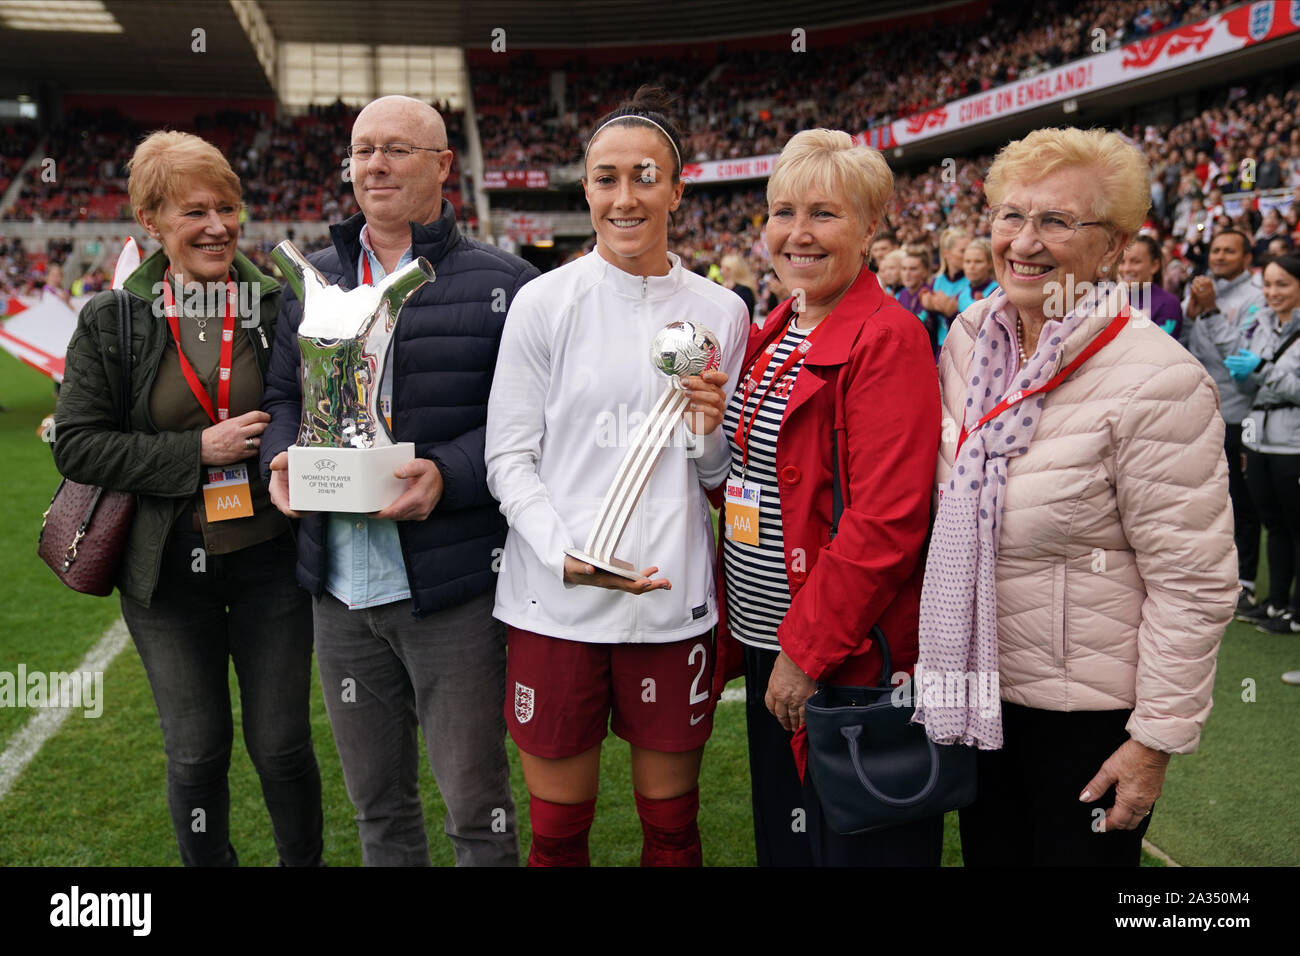 Middlesbrough, UK. 5th Oct, 2019. Lucy Bronze of England with her family receives an honor for her achievments at the Fifa and UEFA awards during the International Women's friendly between England Women and Brazil Women at Riverside Stadium, on October 05, 2019 in Middlesbrough, England. Credit: SPP Sport Press Photo. /Alamy Live News Stock Photo